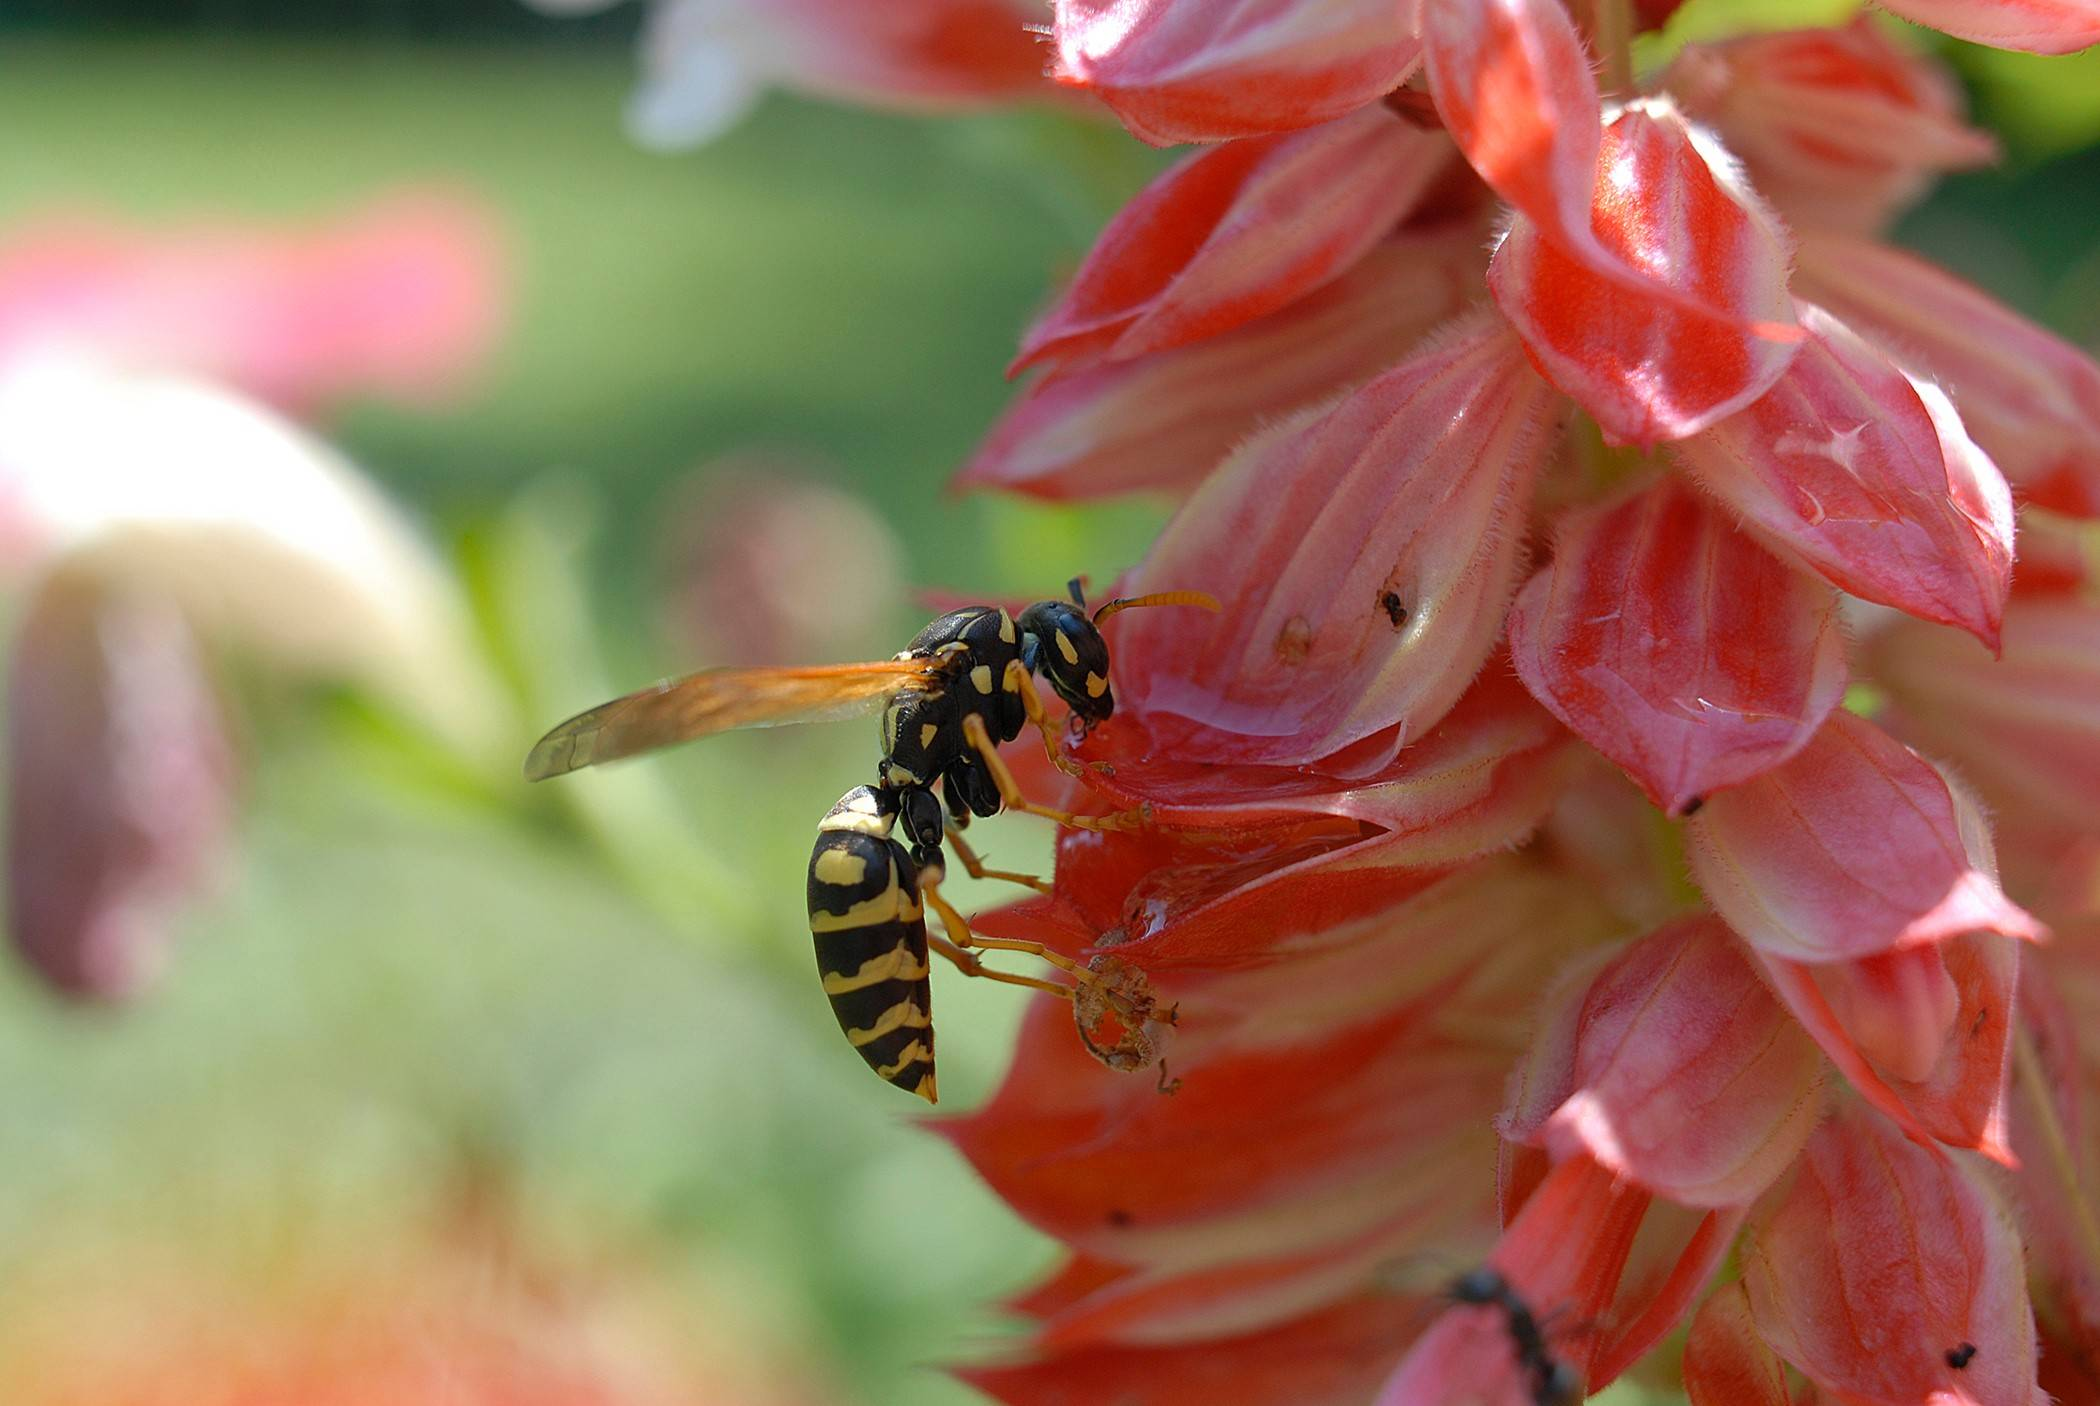 Yellowjackets are attracted to sweet things, so practice good sanitation techniques at picnics and barbecues.